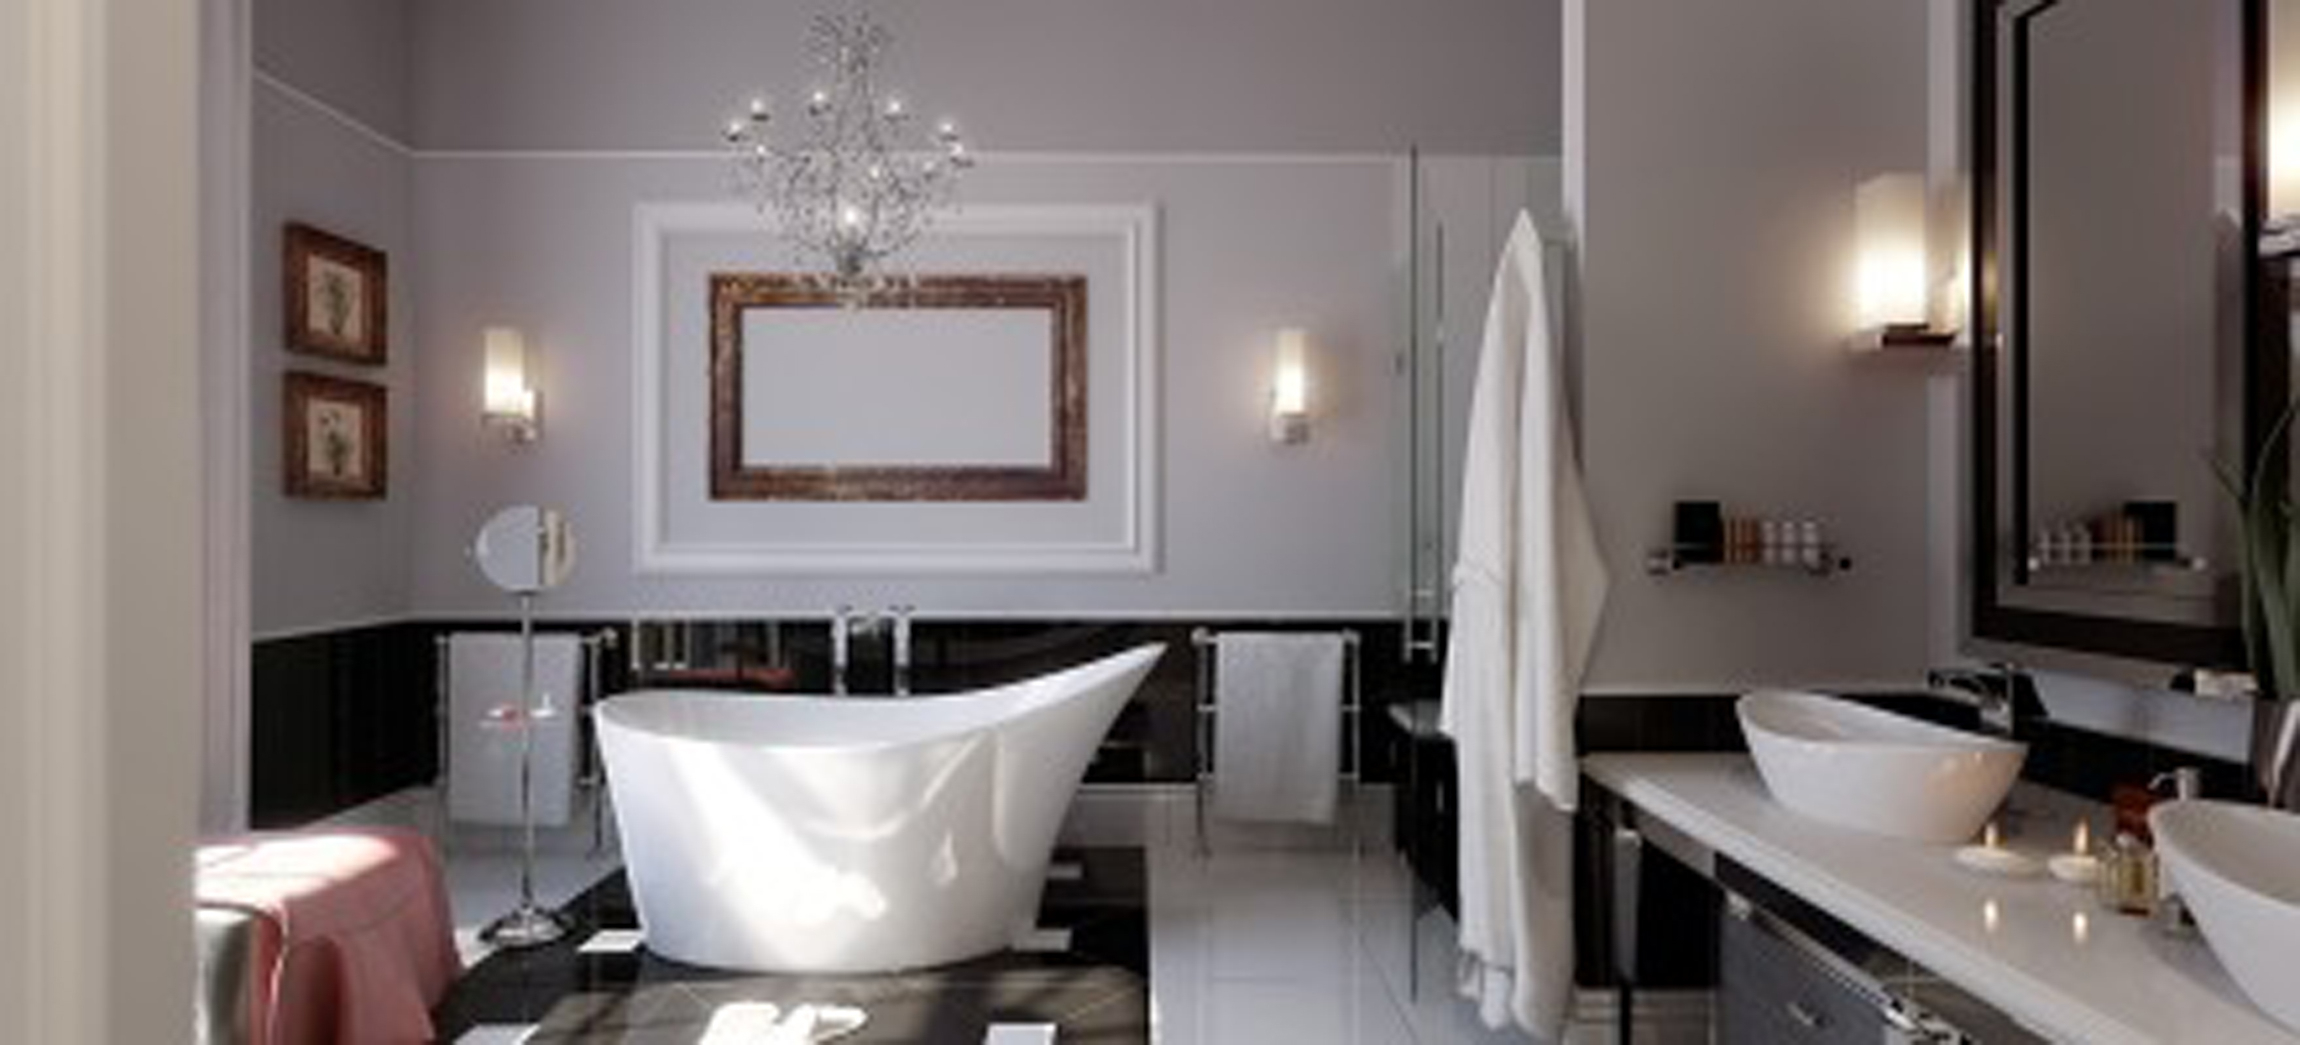 Simple Bathroom Decorate With Classic White Bathtub And Pretty Wall Light Decor Even Handsome Black Cabinet (View 19 of 23)